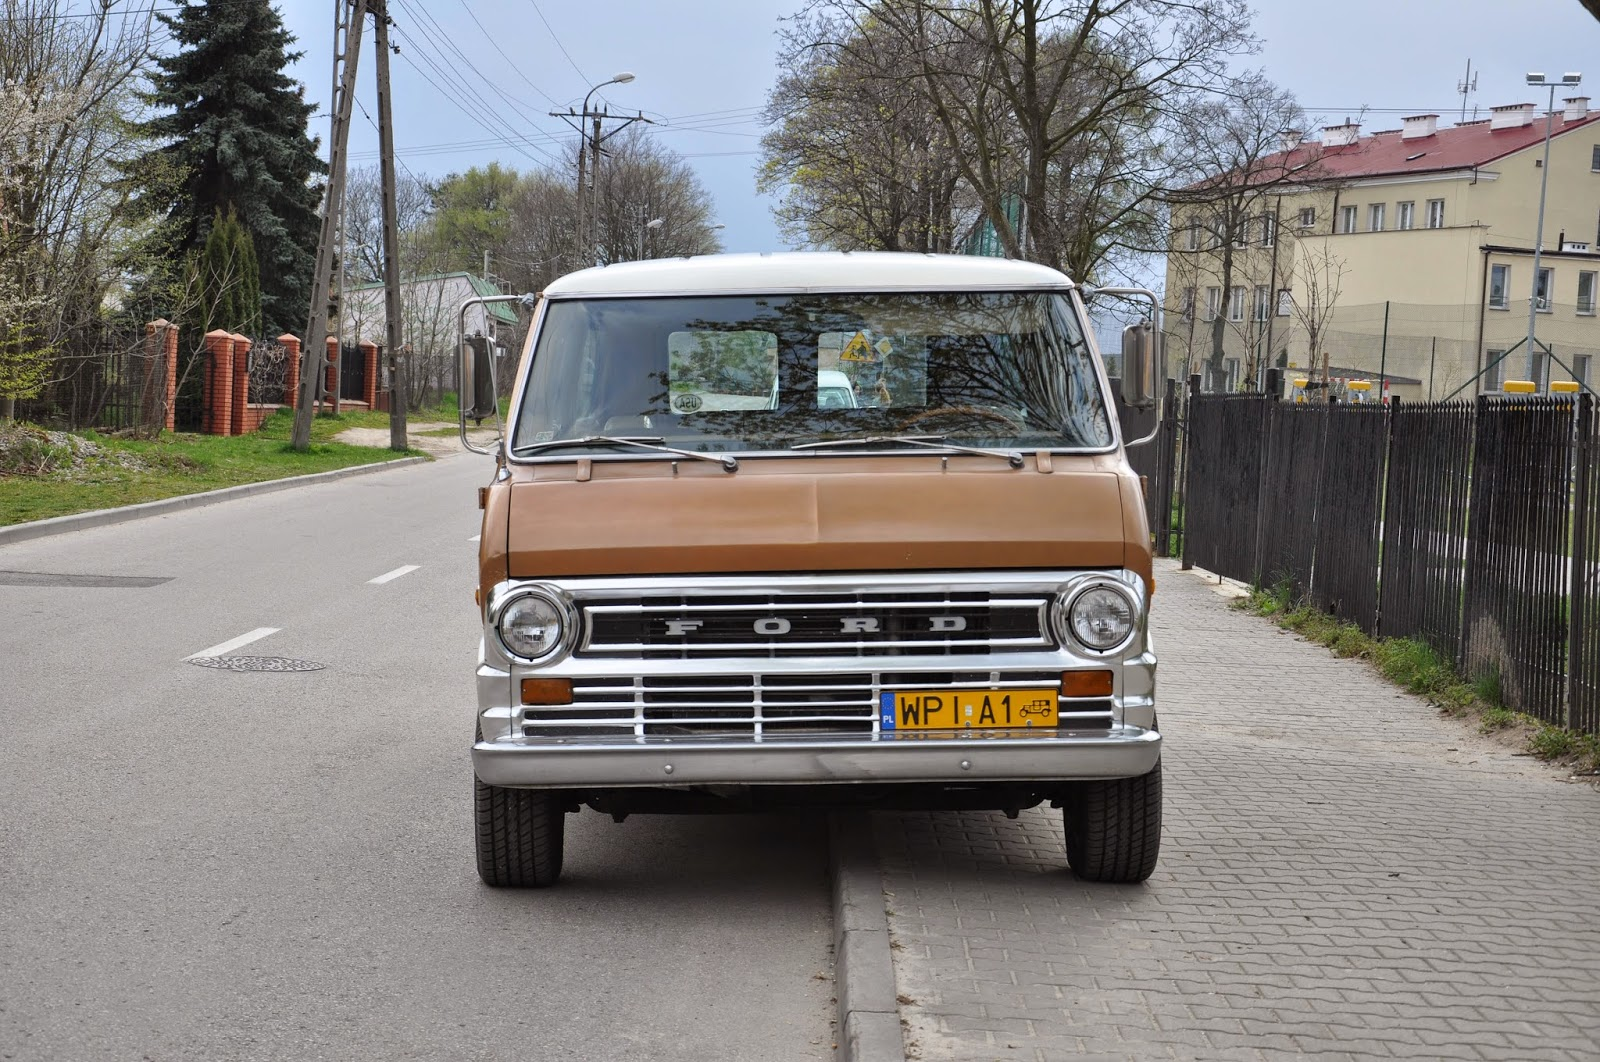 Rebel Rides Behind The Iron Curtain 1972 Ford Chateau